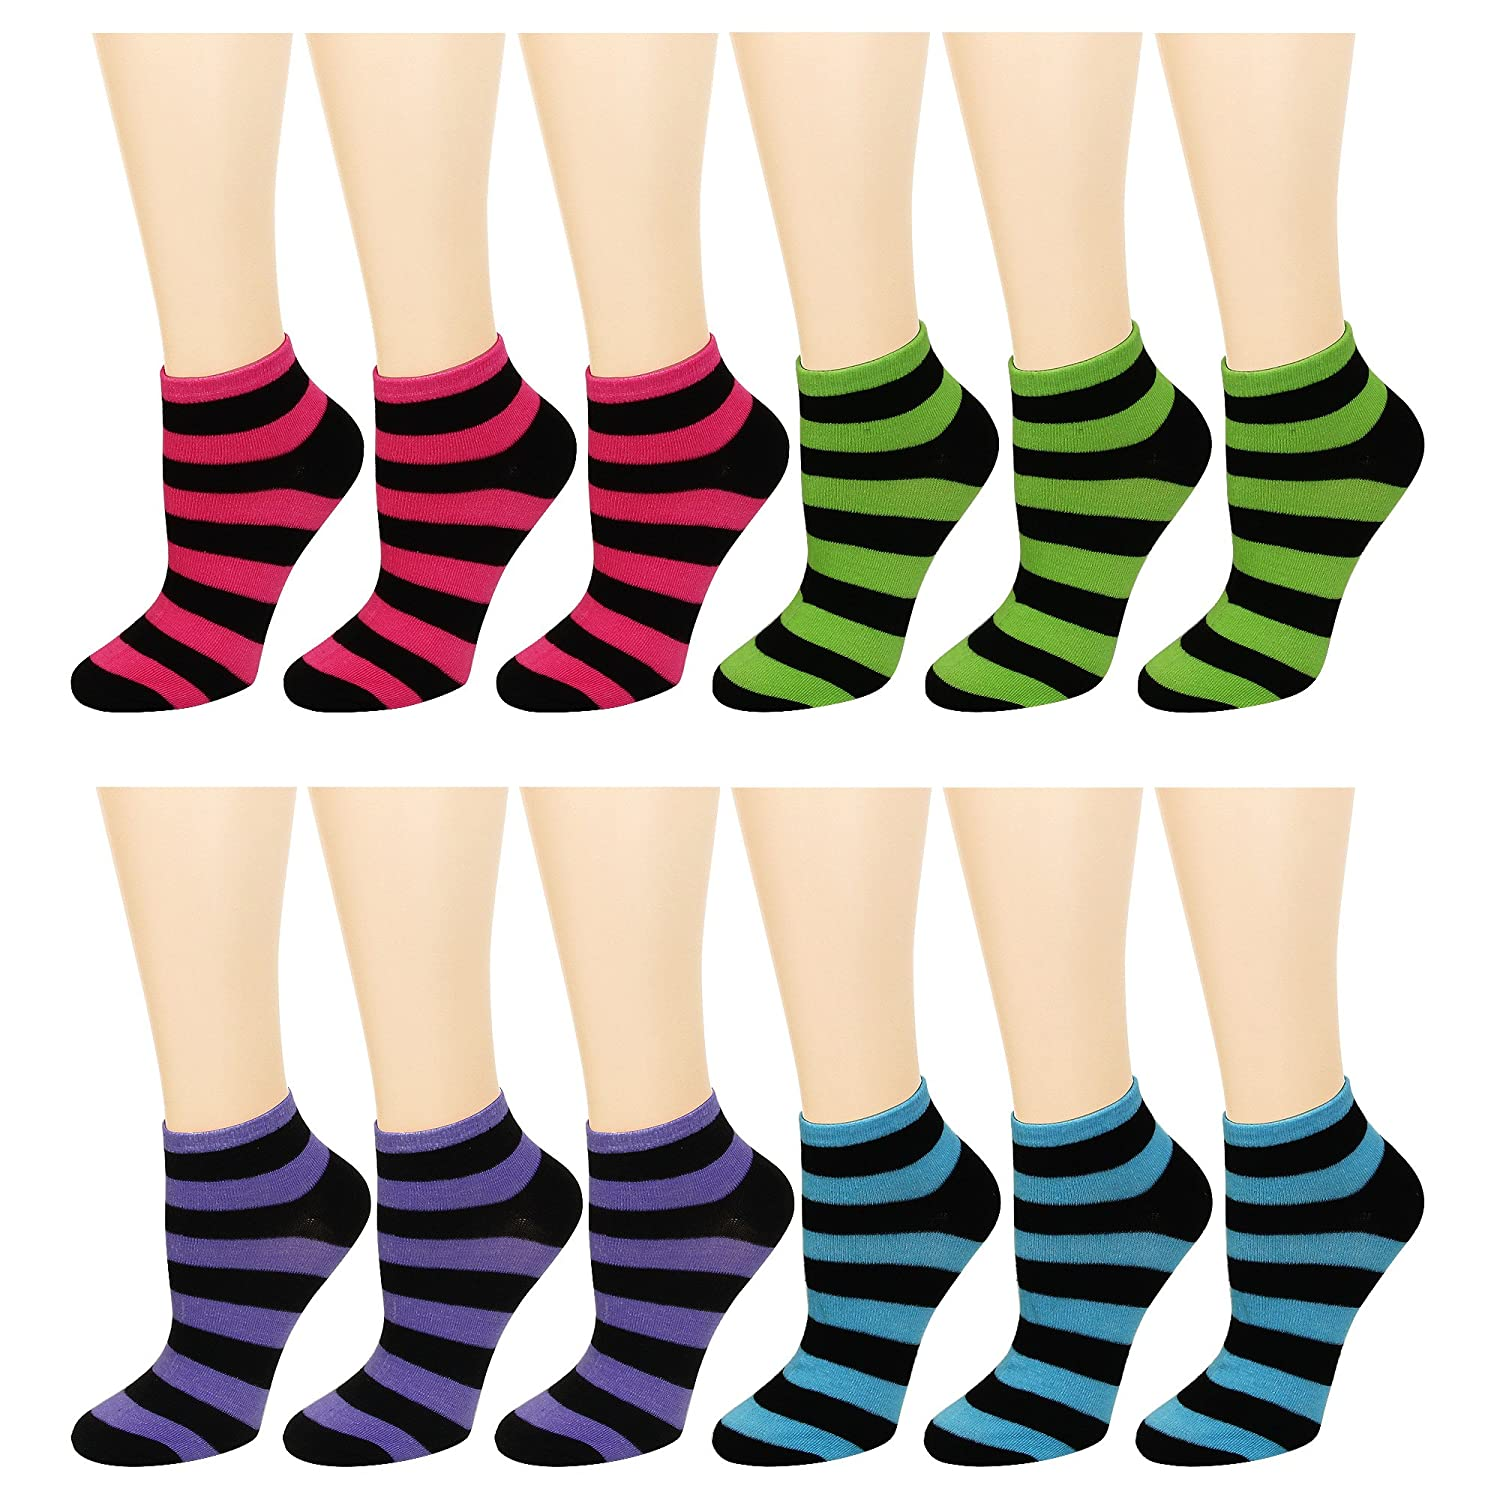 12-Pack Women's Ankle Socks Assorted Colors Size 9-11 68.601-100